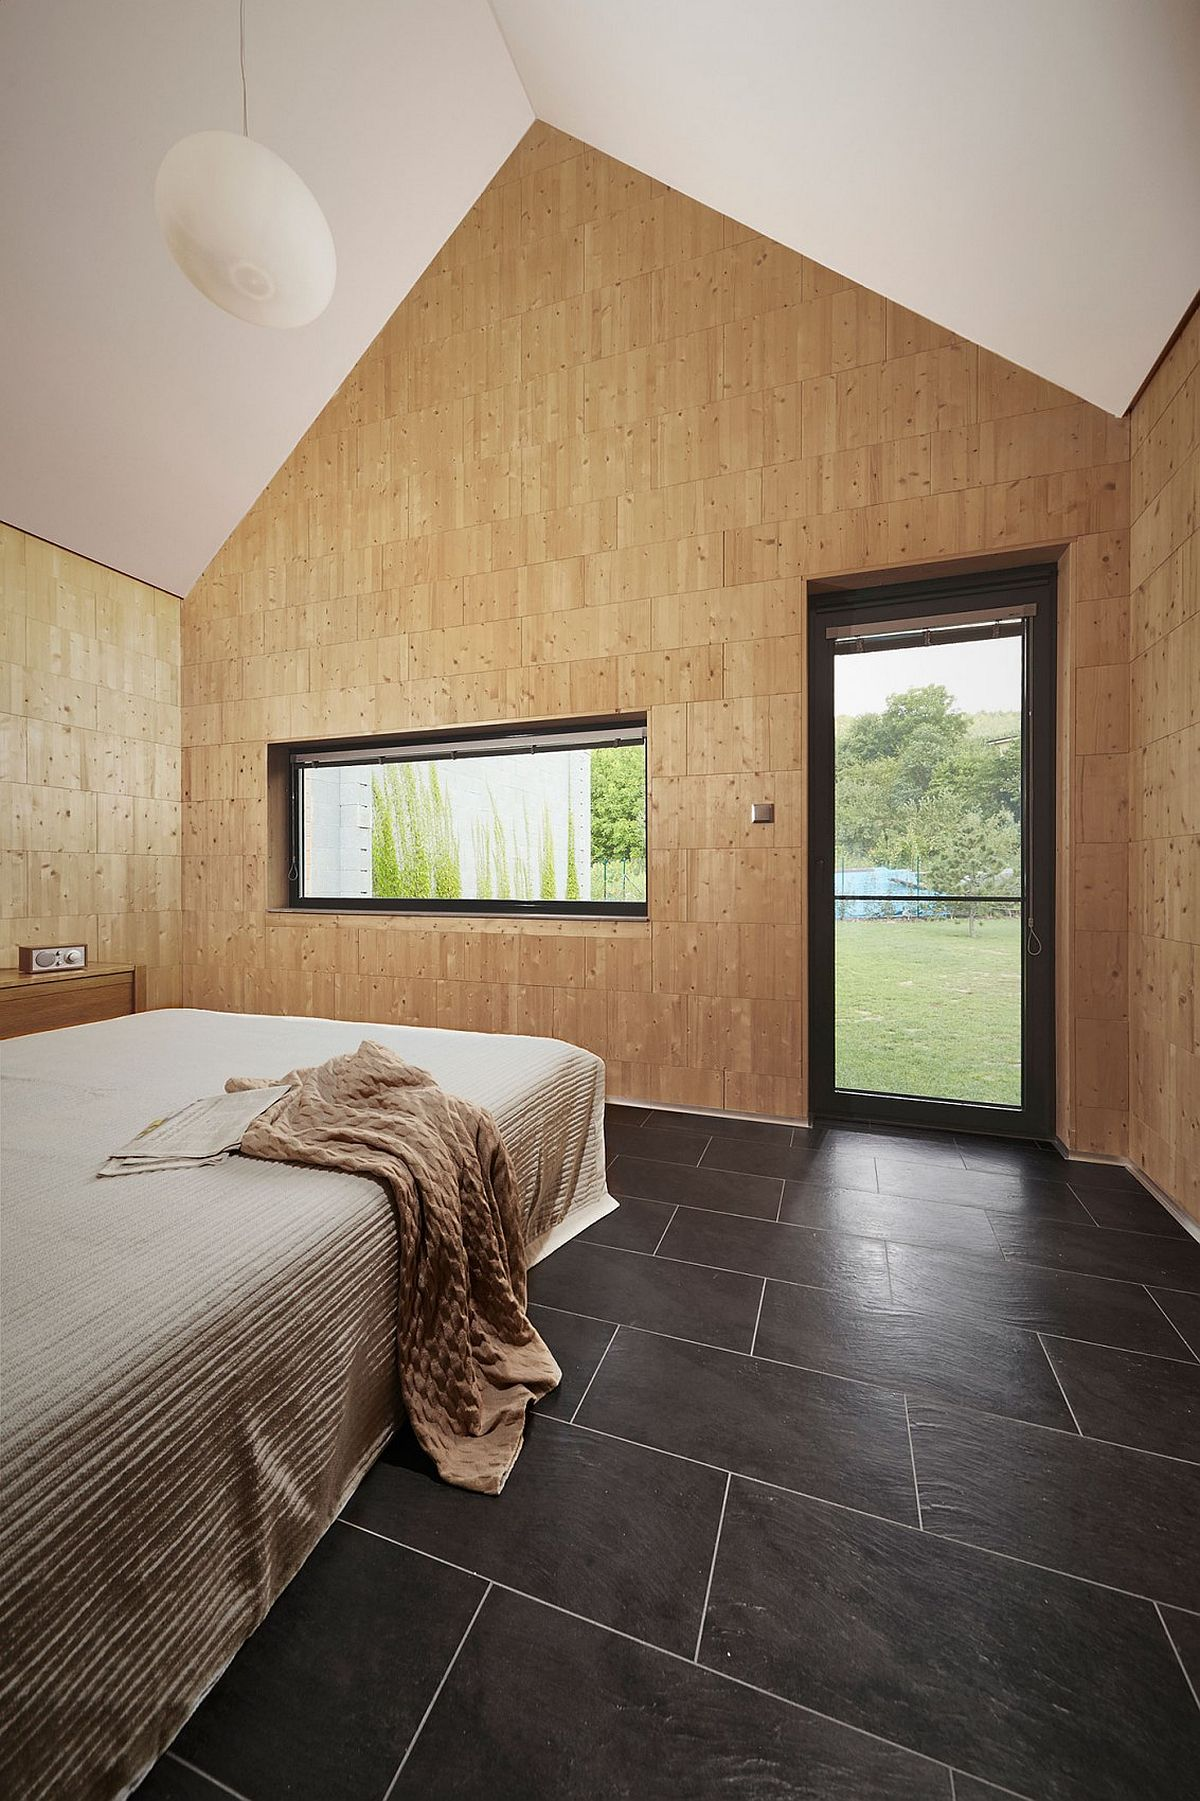 Smart insulation provided wooden bricks for the bedroom